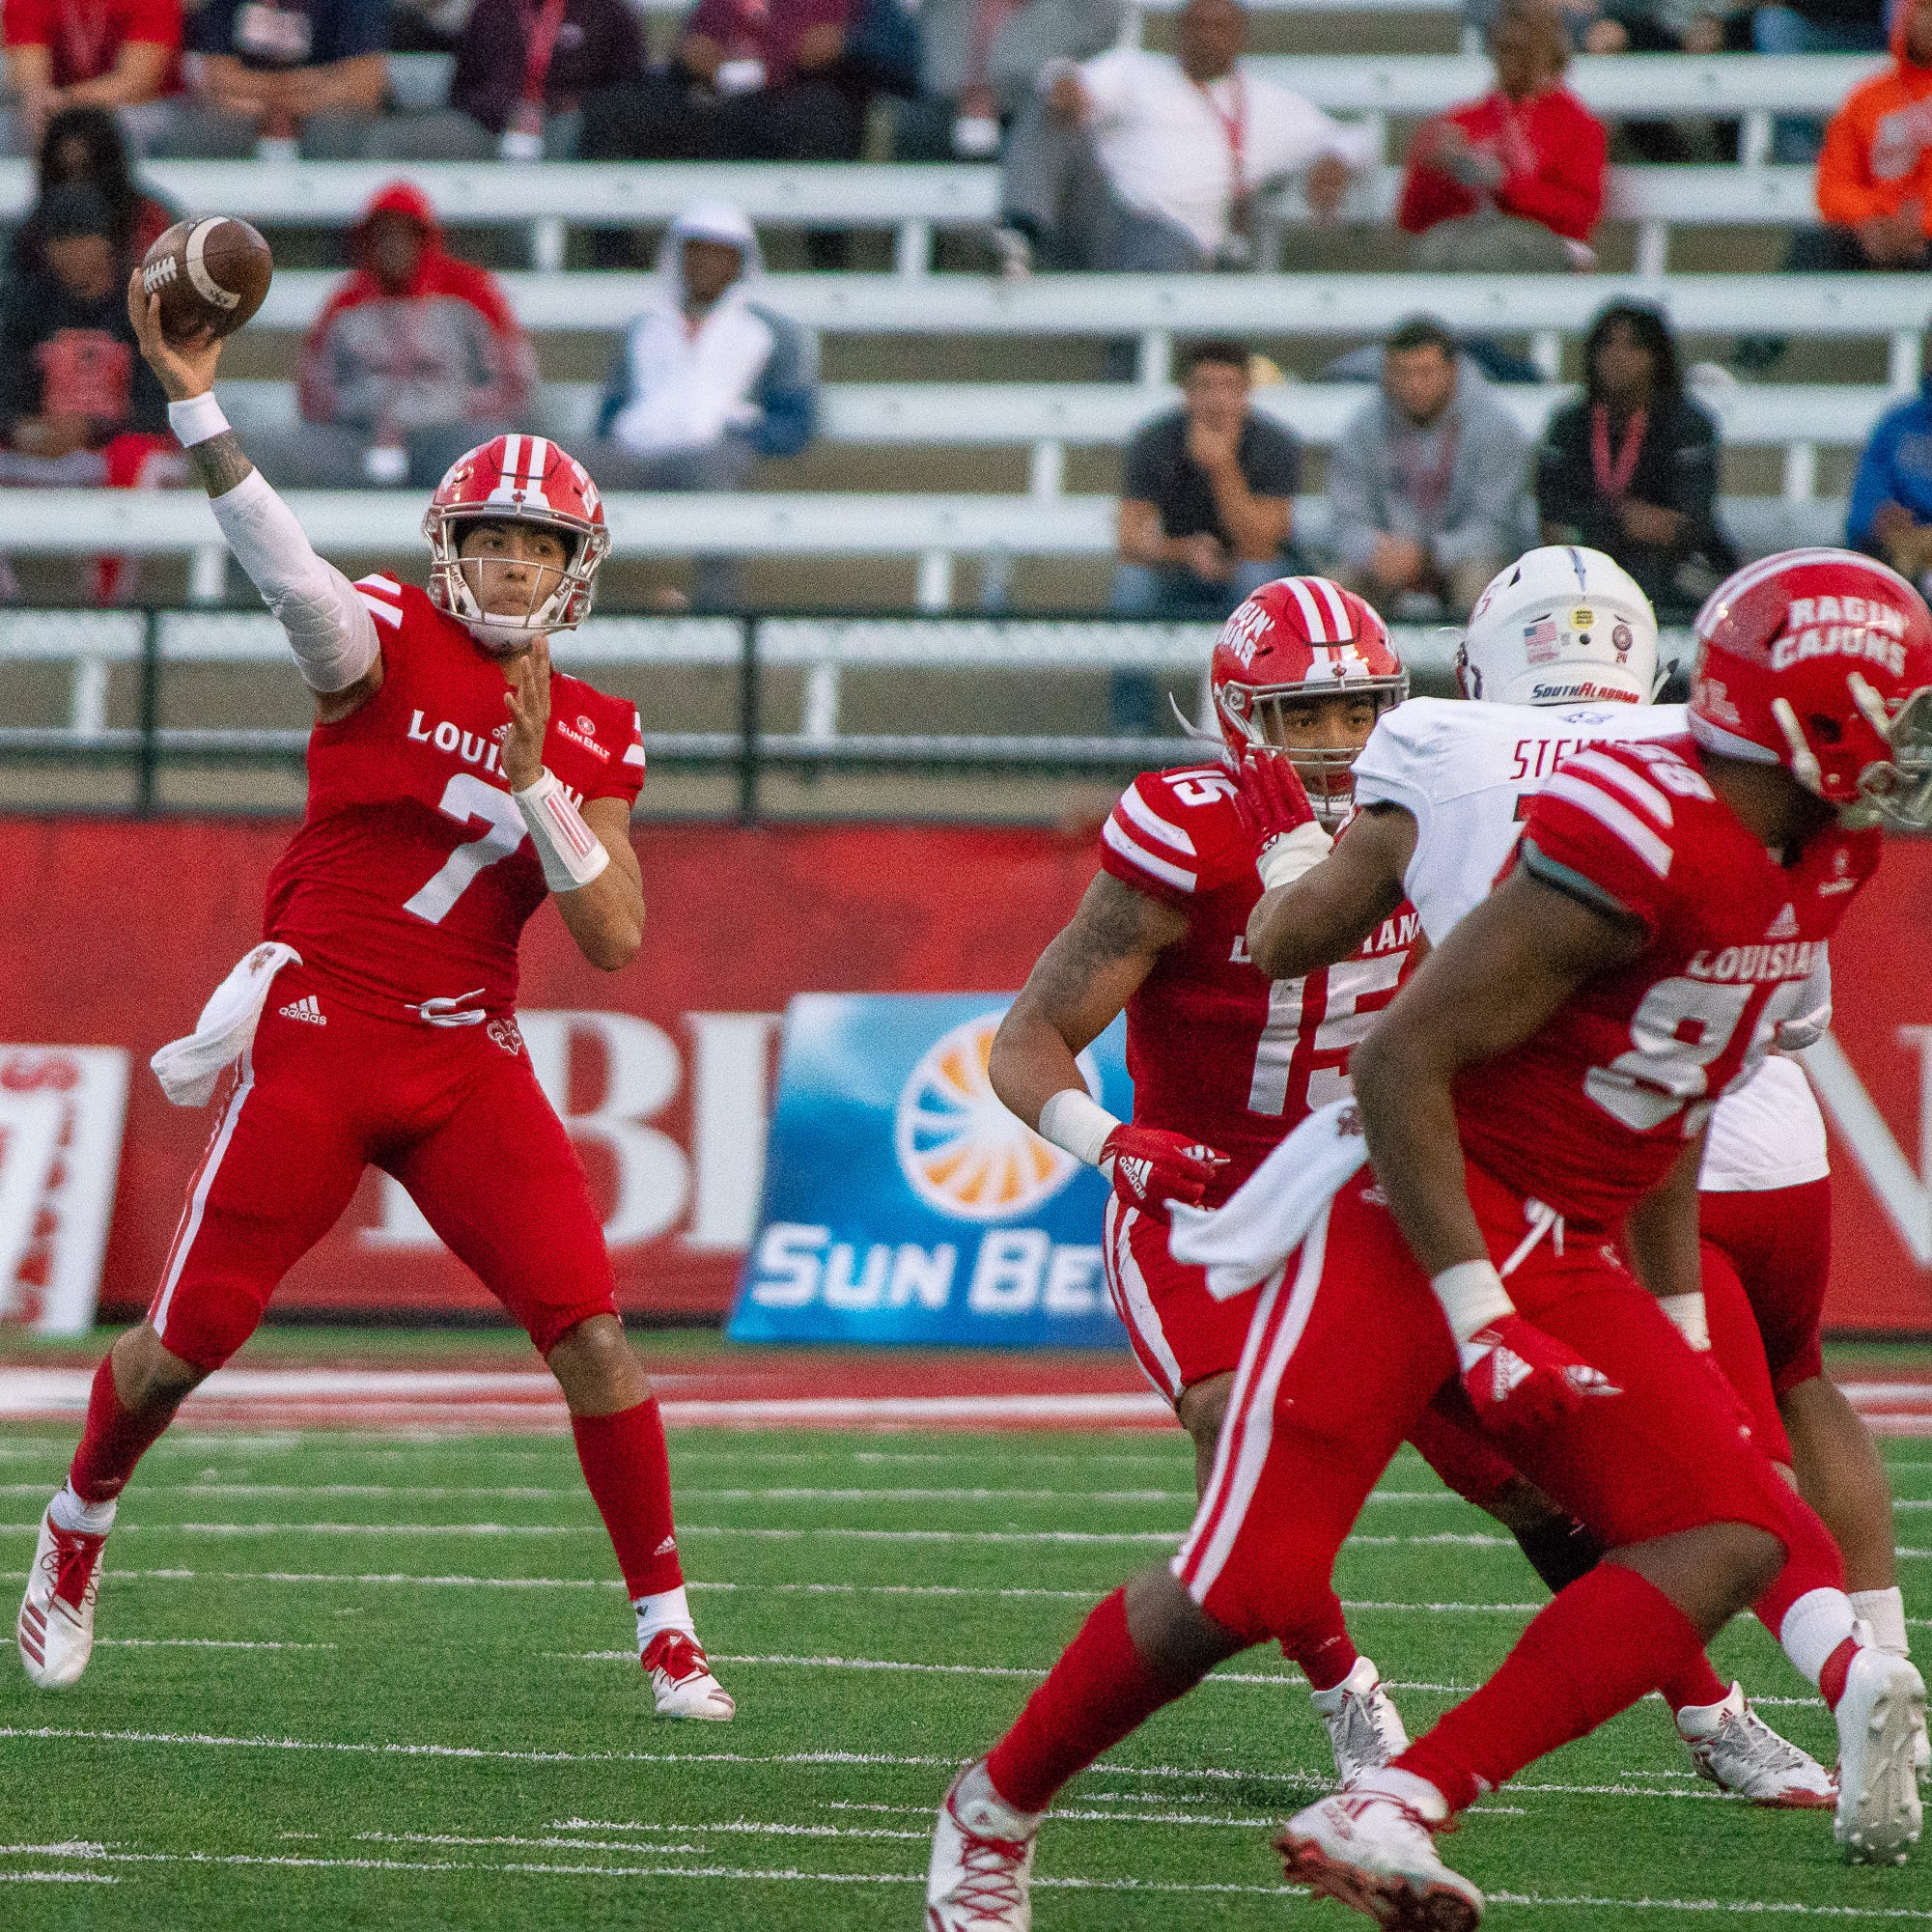 UL's senior quarterback Andre Nunez throws a pass to a receiver as the Ragin' Cajuns play against the South Alabama Jaguars at Cajun Field on November 17, 2018.